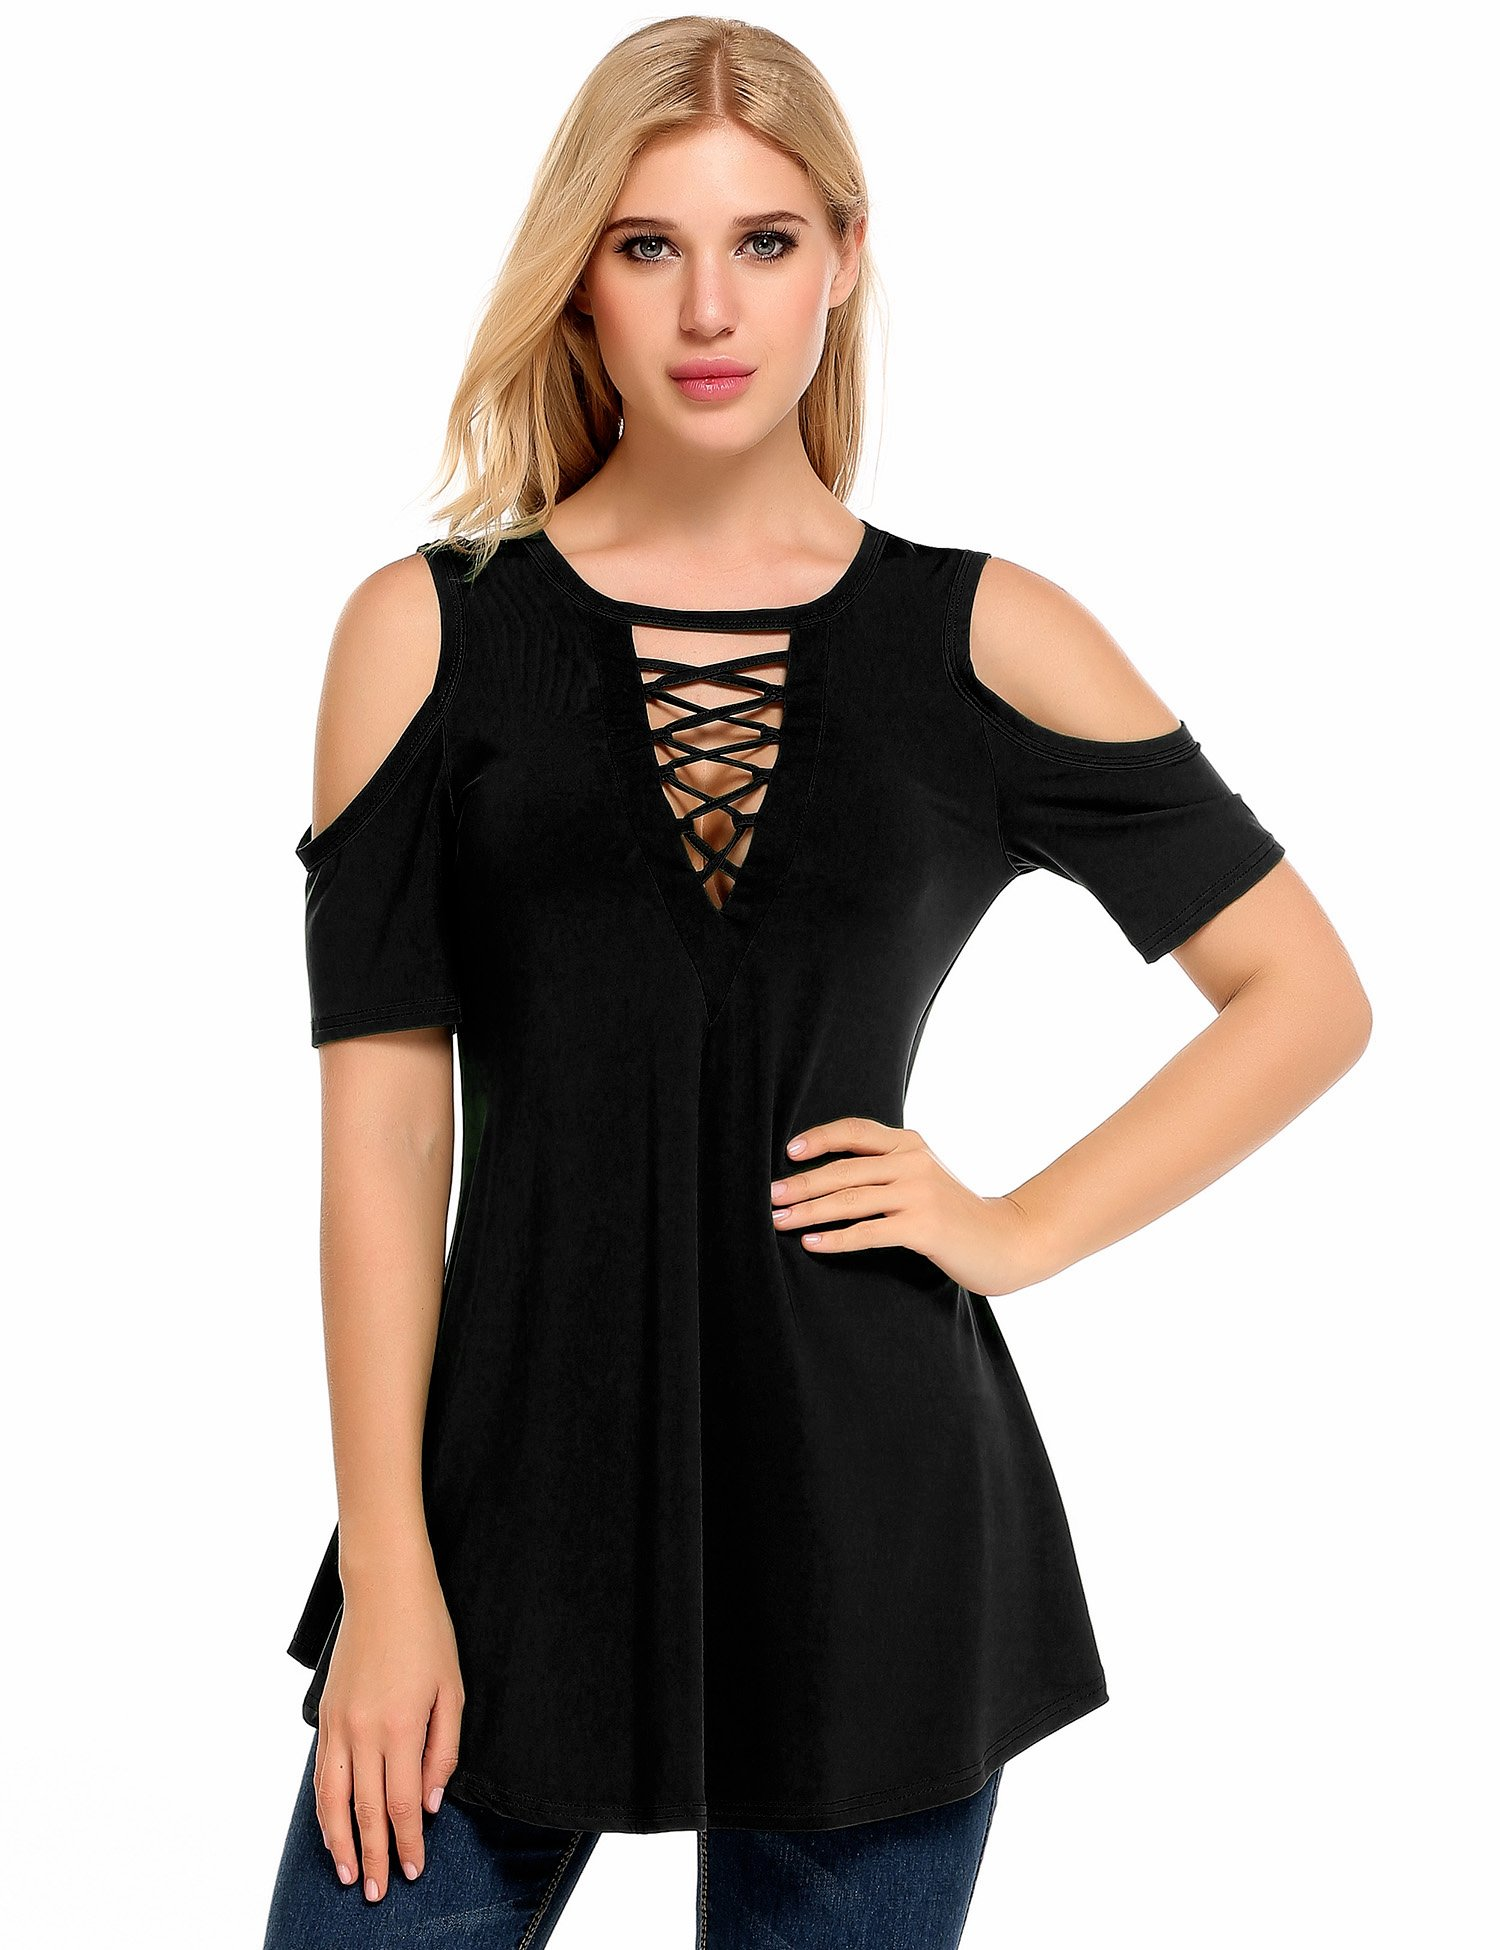 aac2cbe30492ec Zeagoo Womens V-Neck Short Sleeve Cut Out Shoulder Top Black 3X ...